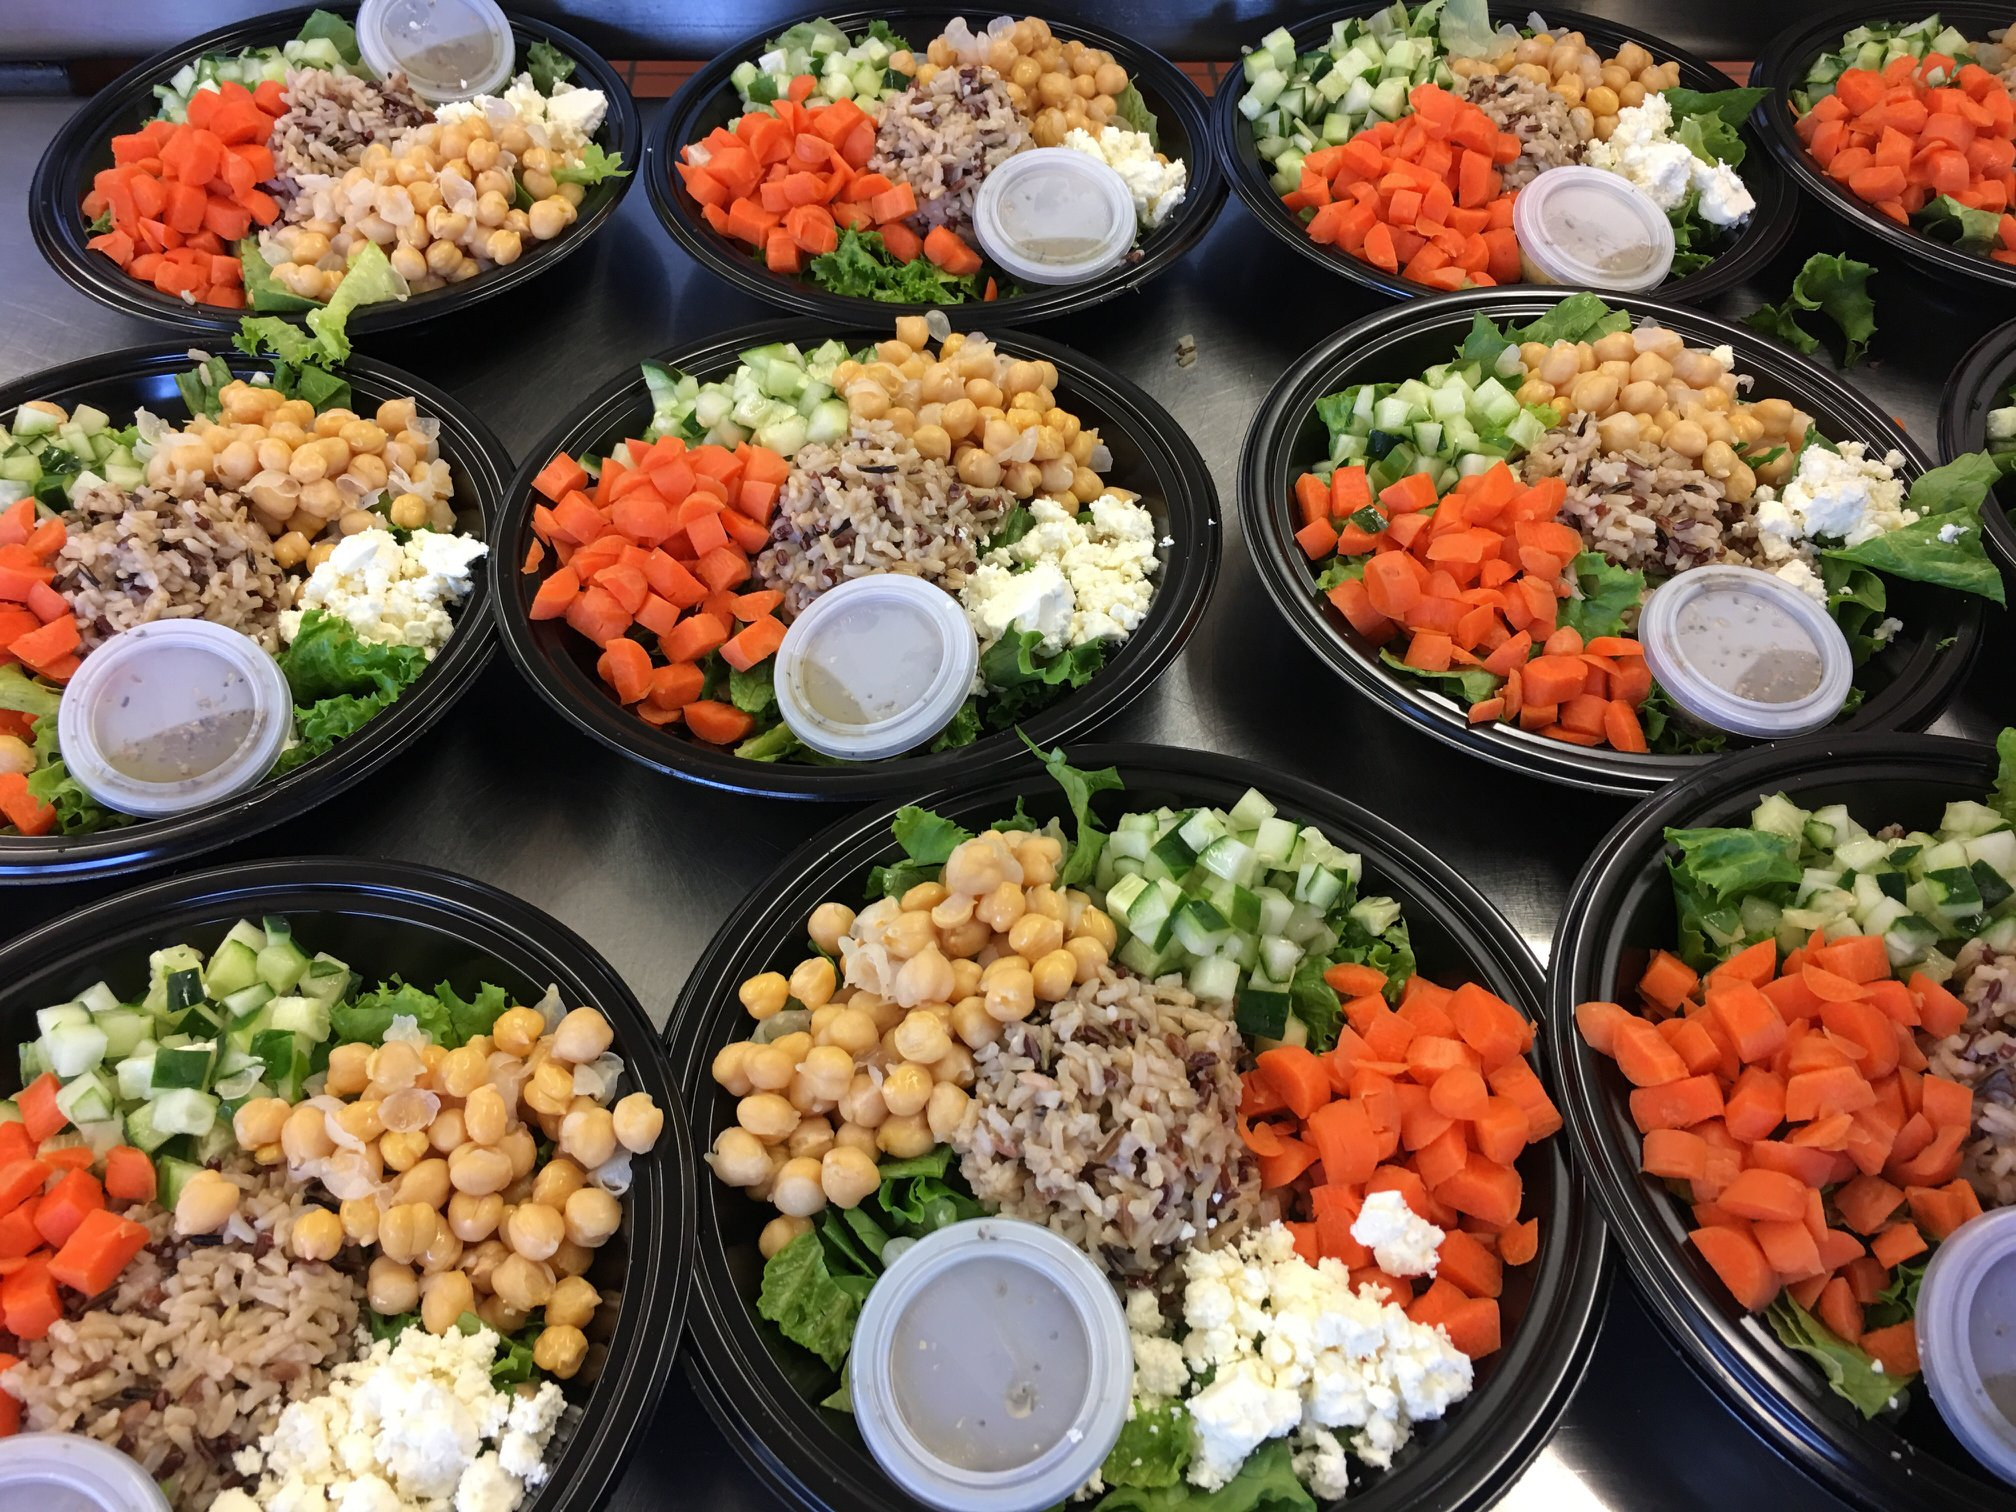 Loudoun County Public Schools serves students Greek veggie grain bowls for school lunch after eliminating all artificial sweeteners and dyes from their menus.